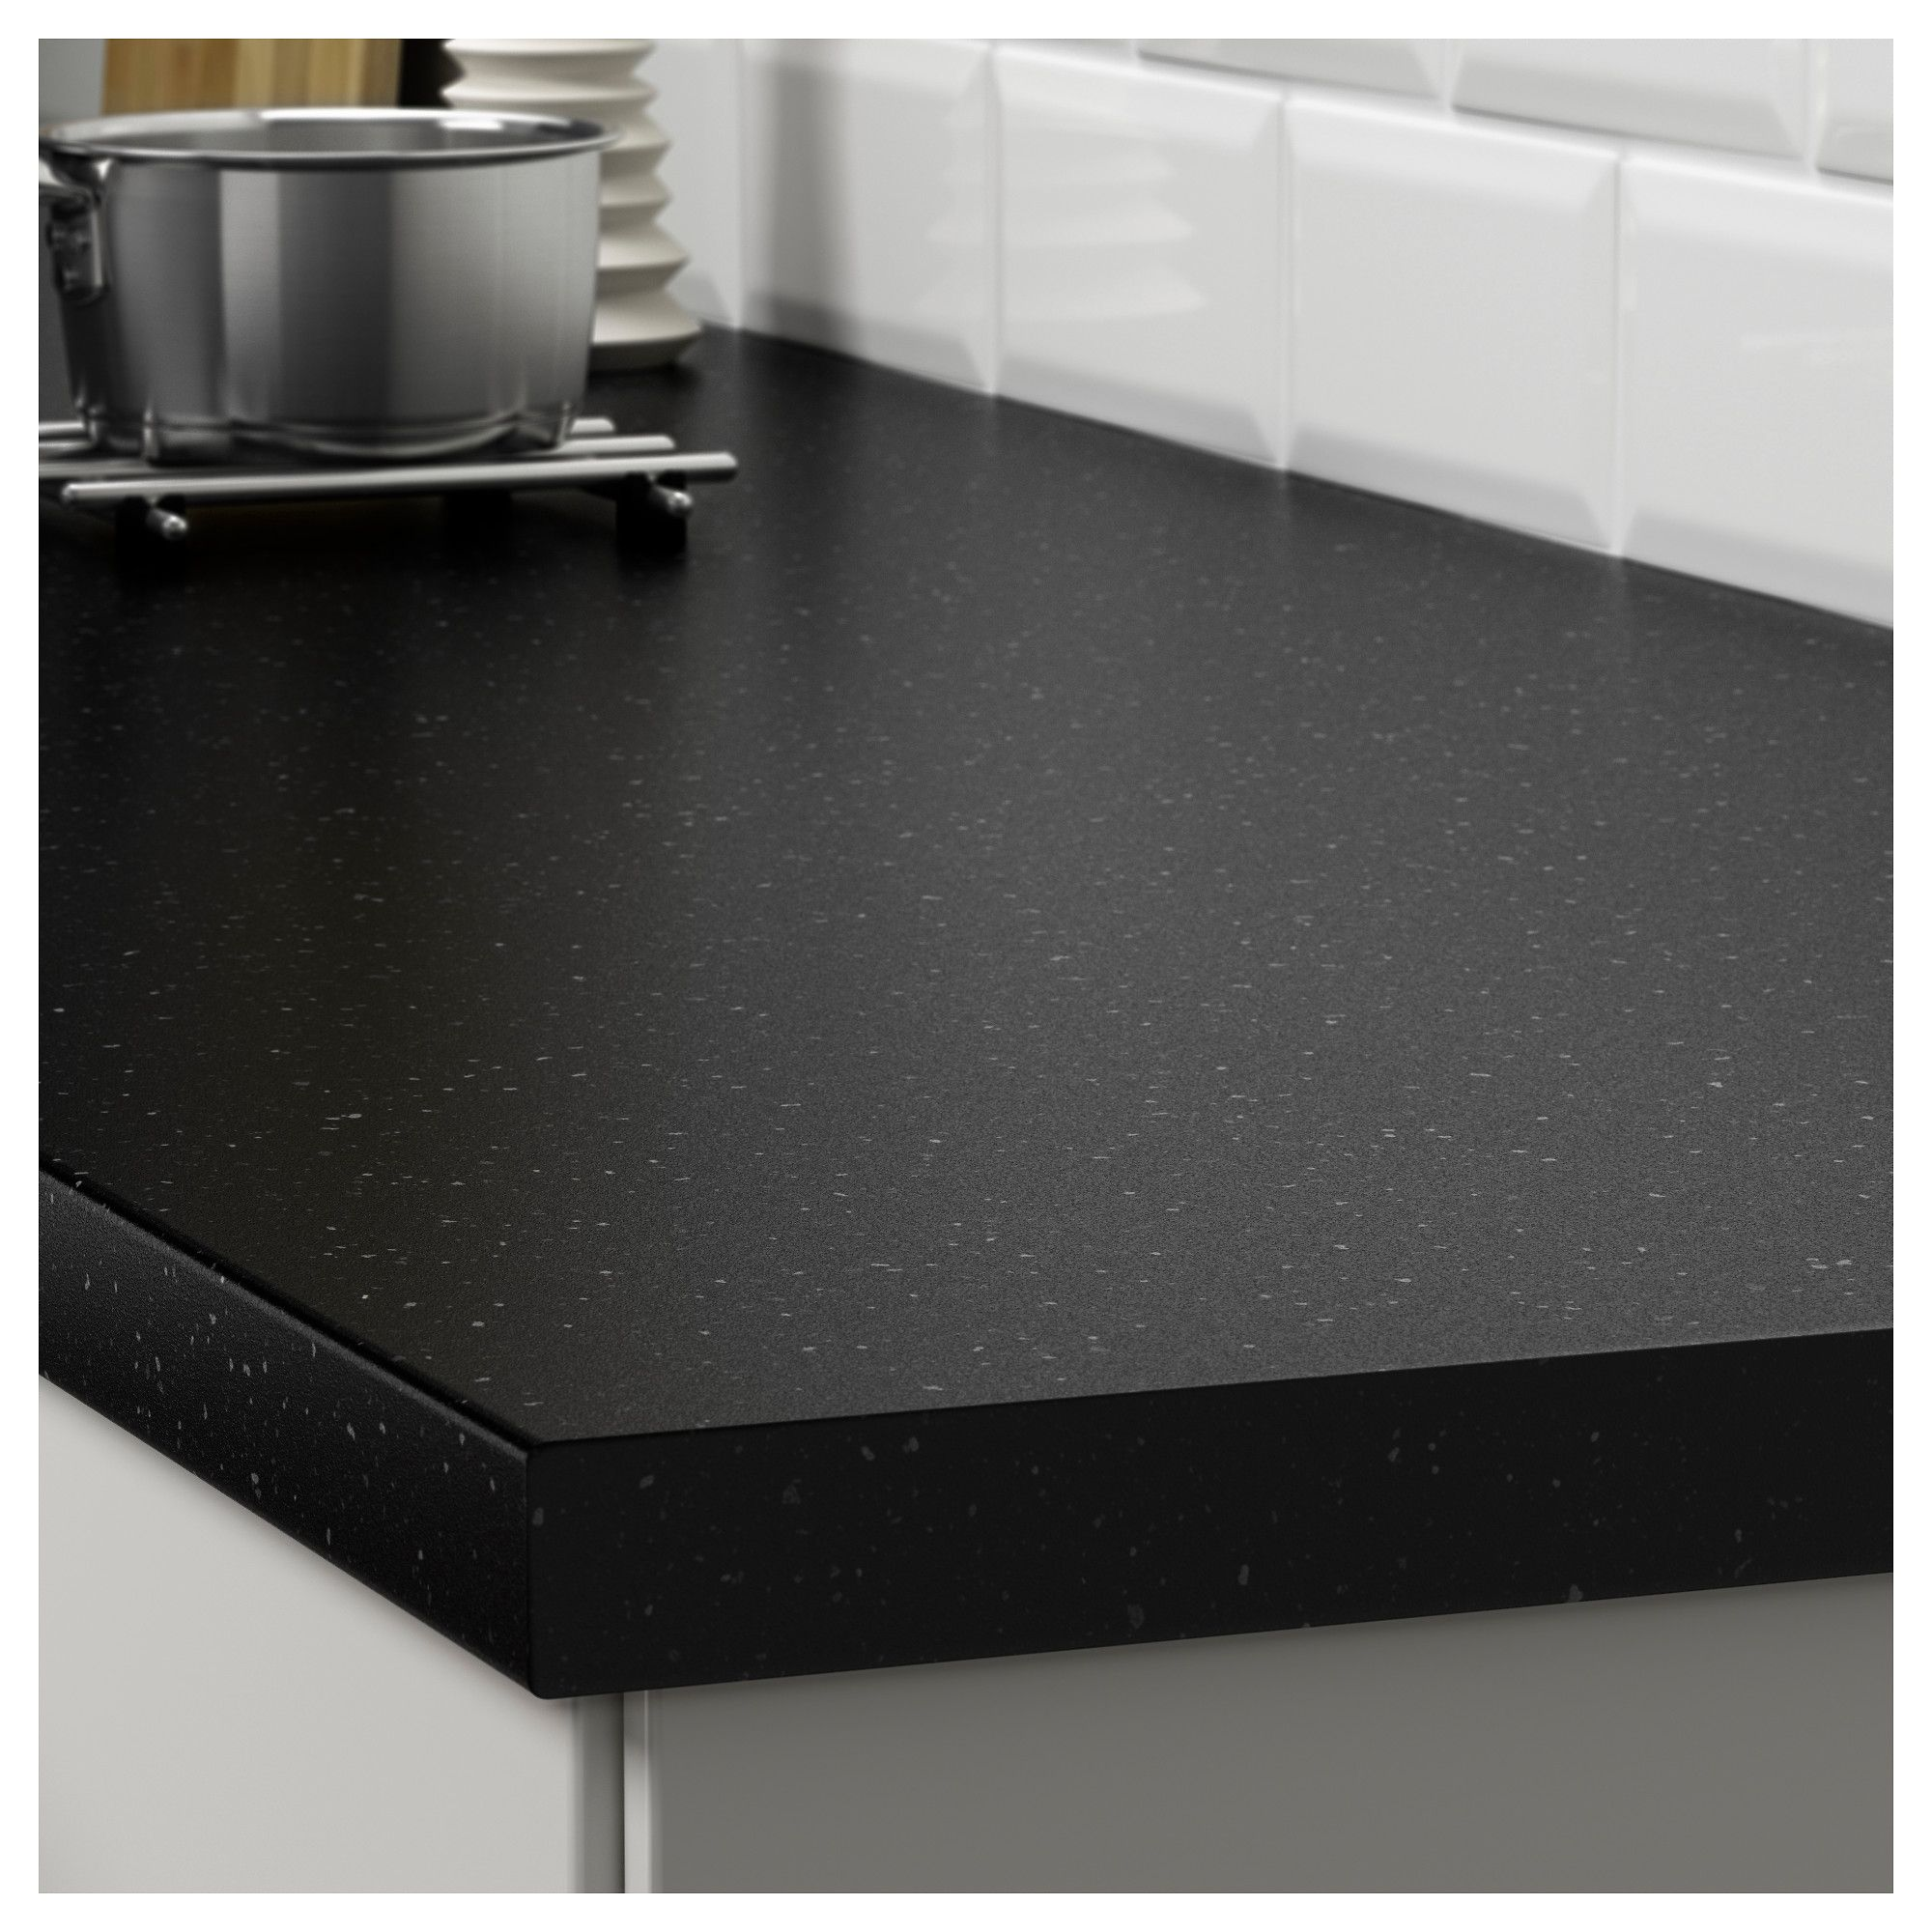 Saljan Countertop Black Mineral Effect Laminate Ikea Laminate Countertops Black Laminate Countertops Kitchen Countertops Laminate